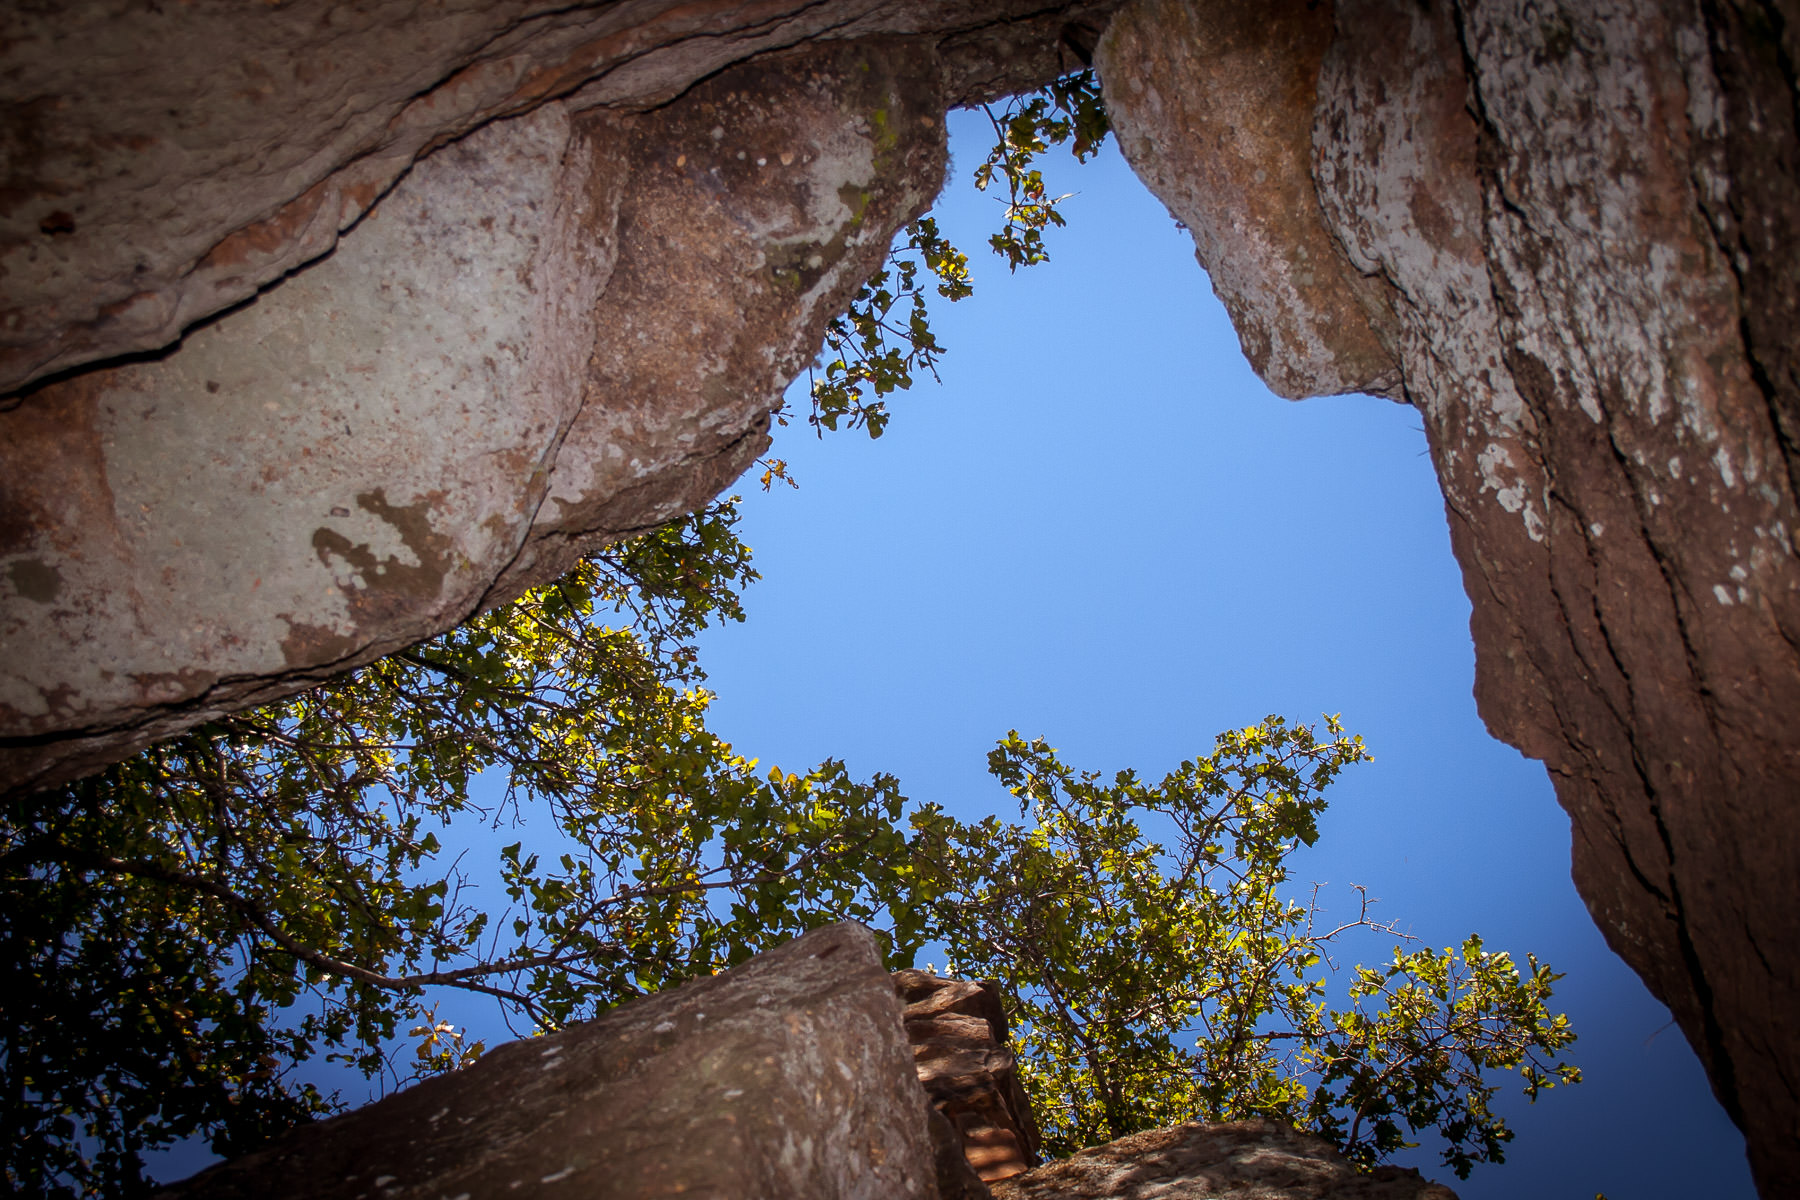 The sky and trees rise beyond a rock crevice at Lake Mineral Wells State Park in Texas.